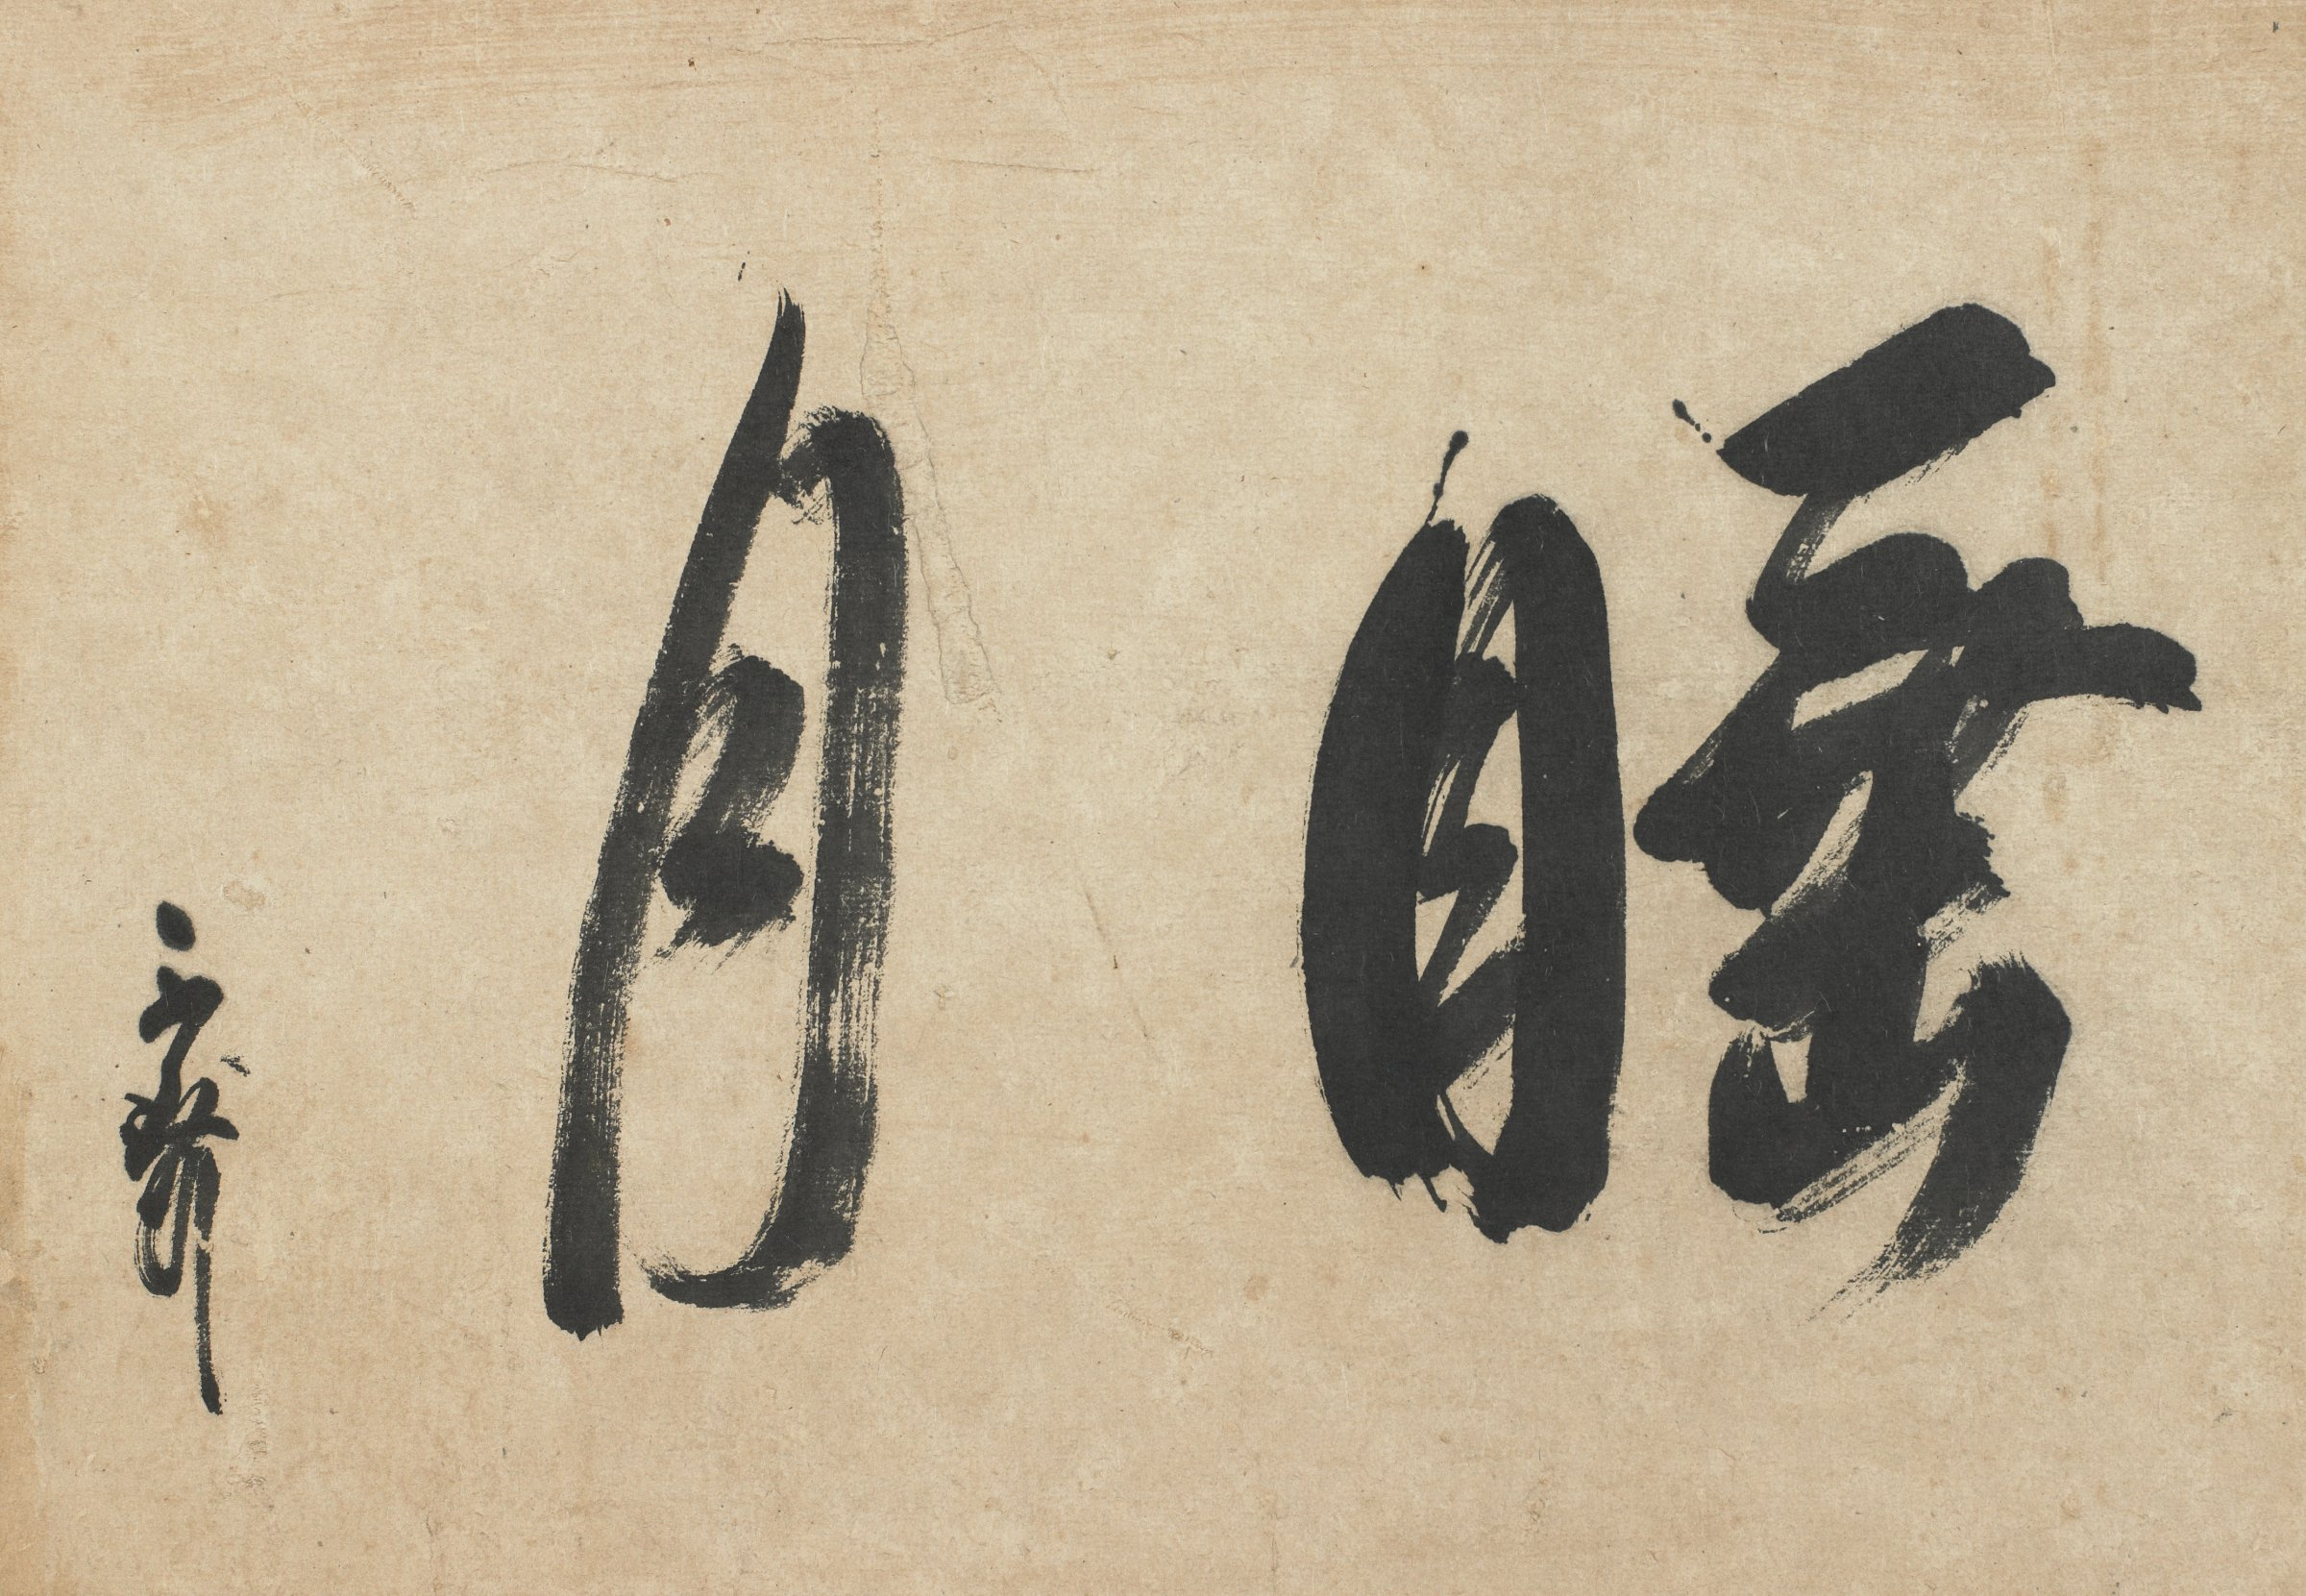 A two-character calligraphy